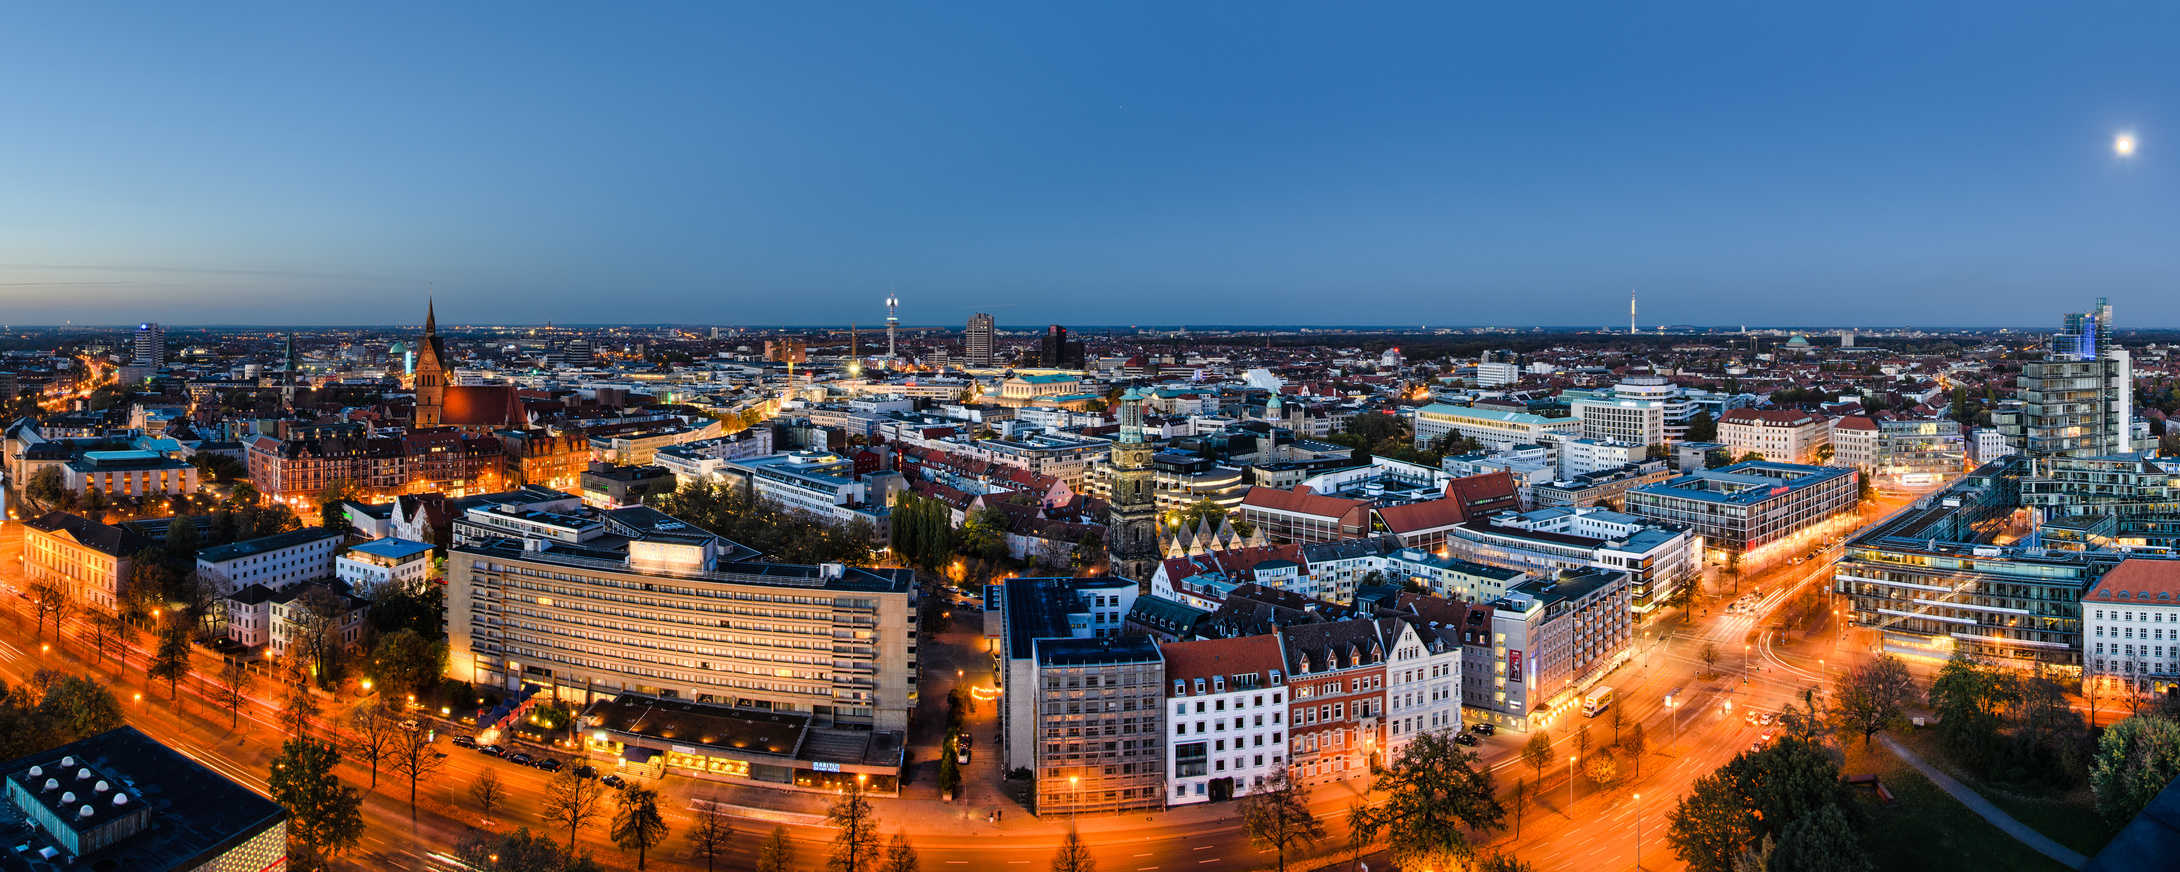 Hannover bei Nacht - L3 Consulting